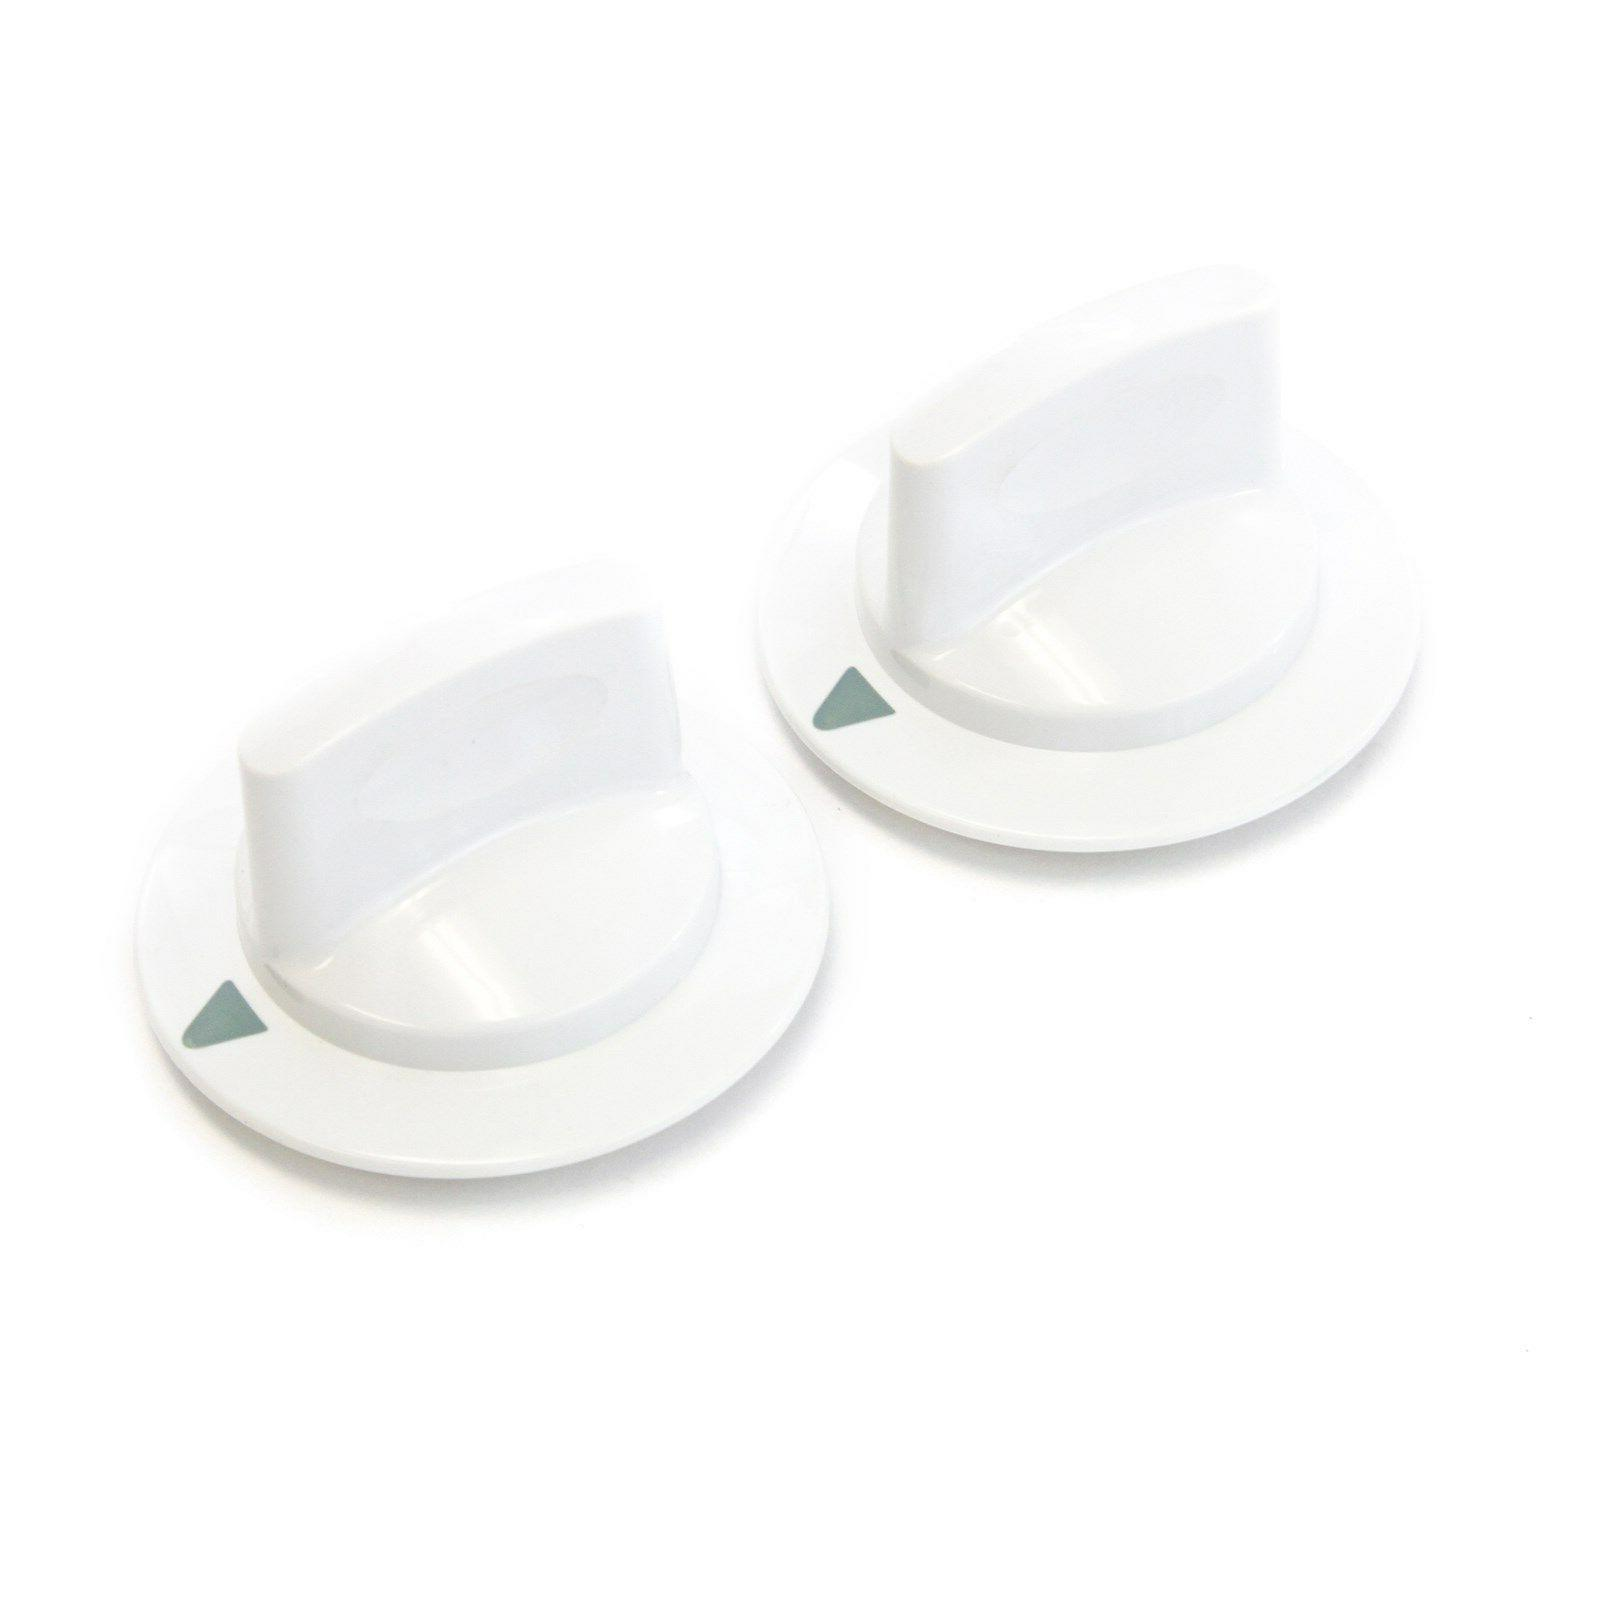 2 white dryer timer control knobs fits